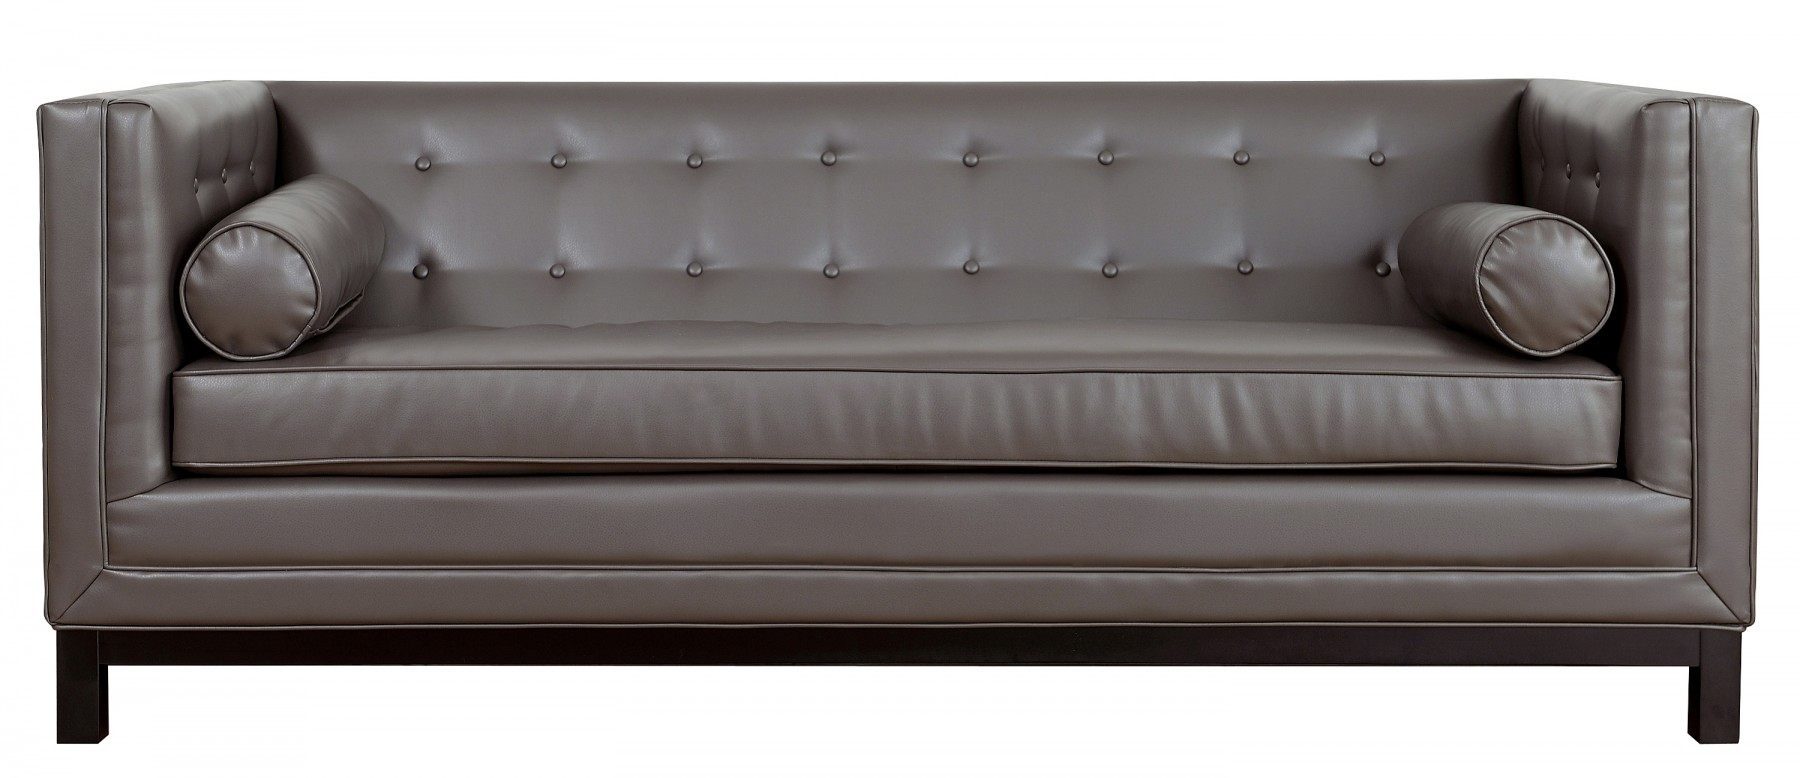 Groovy Grey Leather Tufted Sofa Couch Sofa Ideas Interior Interior Design Ideas Gentotthenellocom